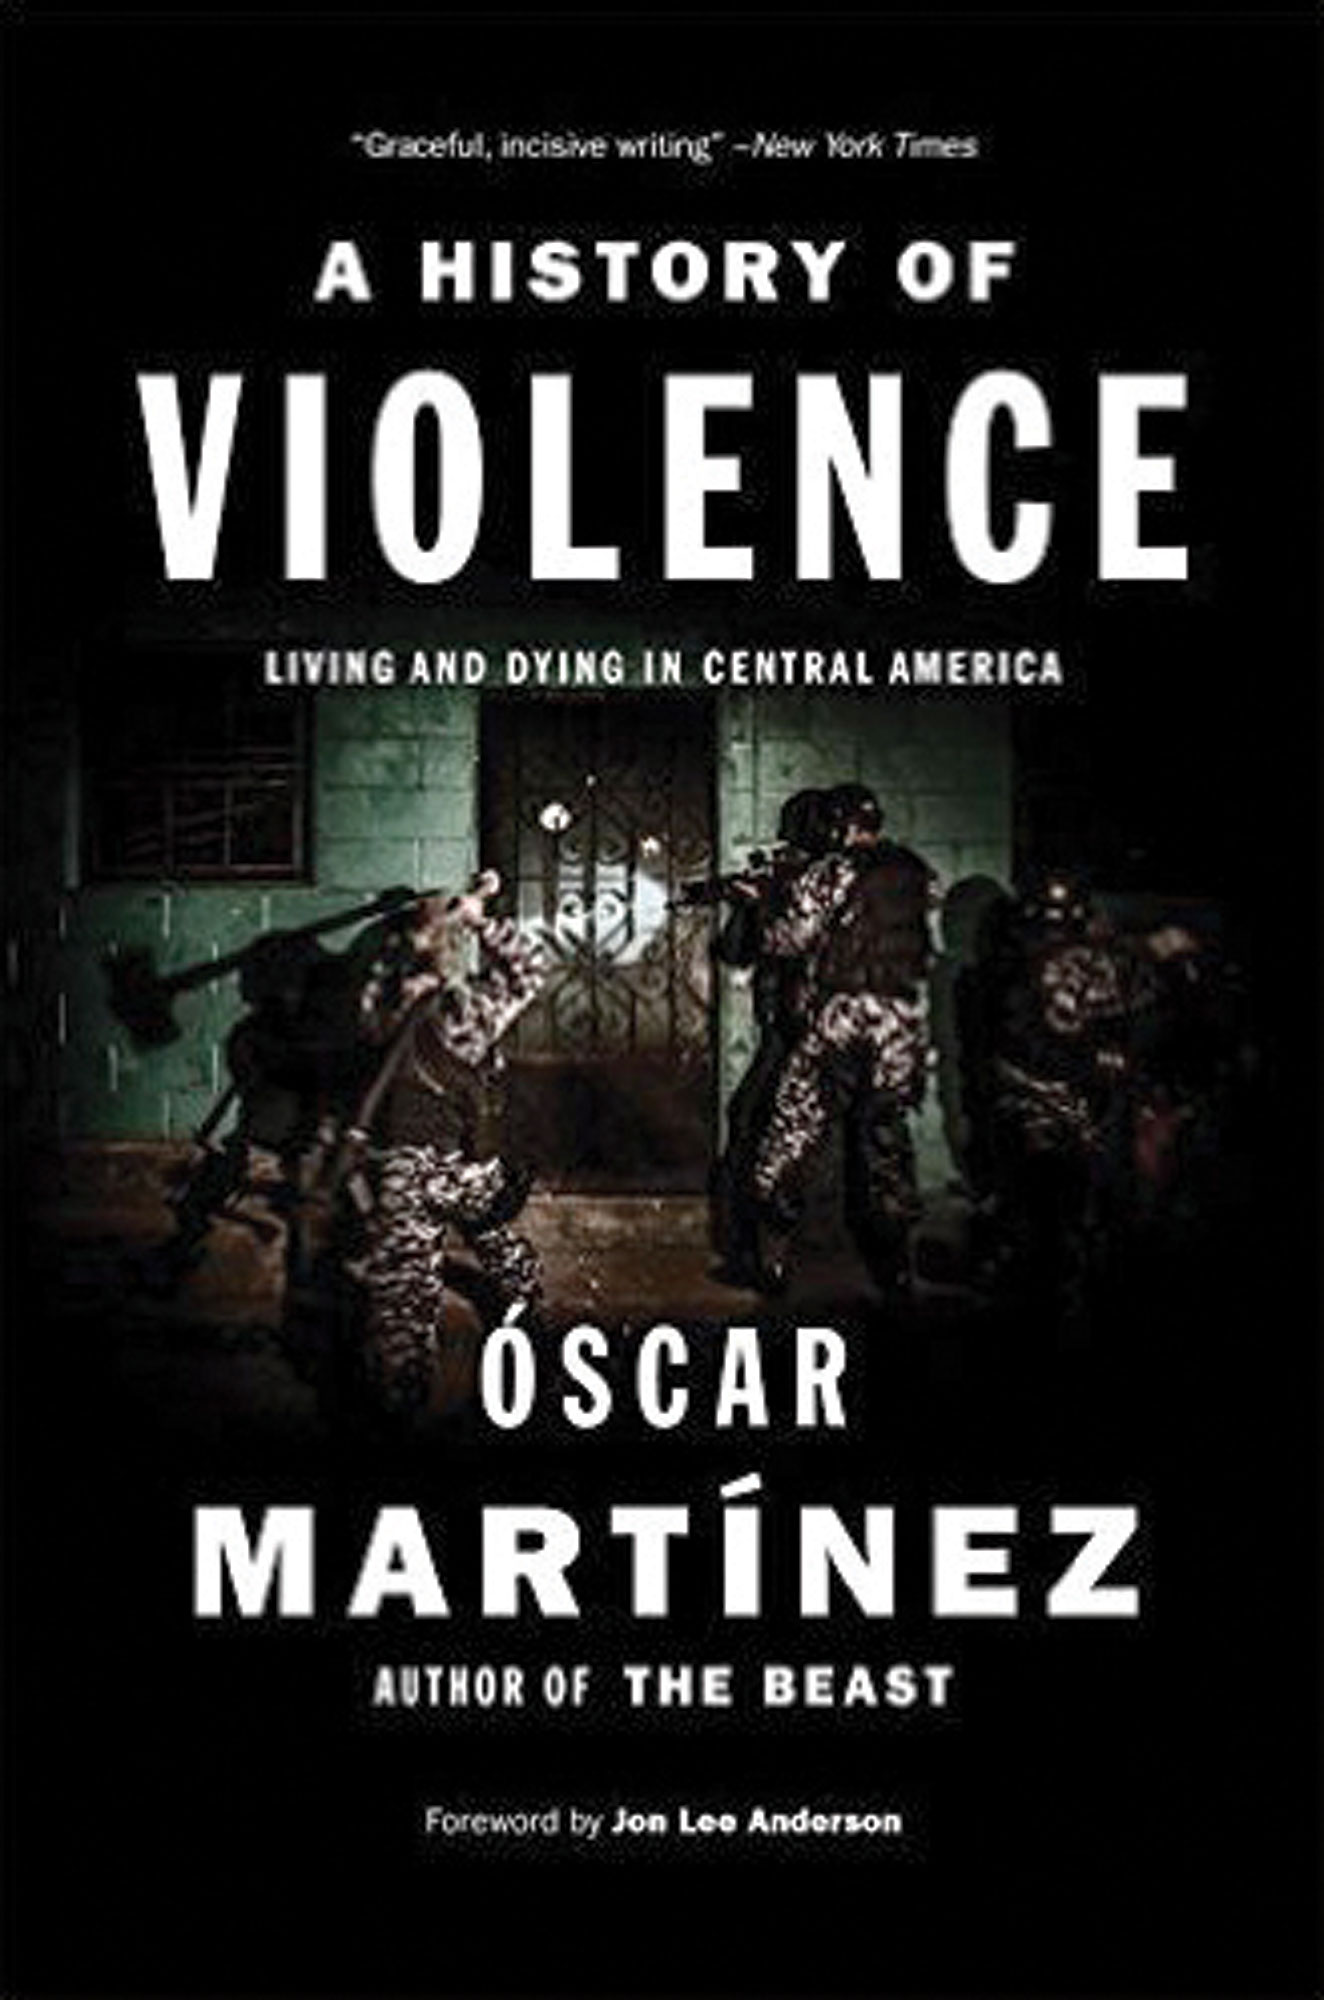 A History of Violence: Living and Dying in Central America Óscar Martínez Translation by John B. Washington and Daniela Ugaz Verso Books 288 pages; $24.95 (Hardback); $9.99 (Ebook)